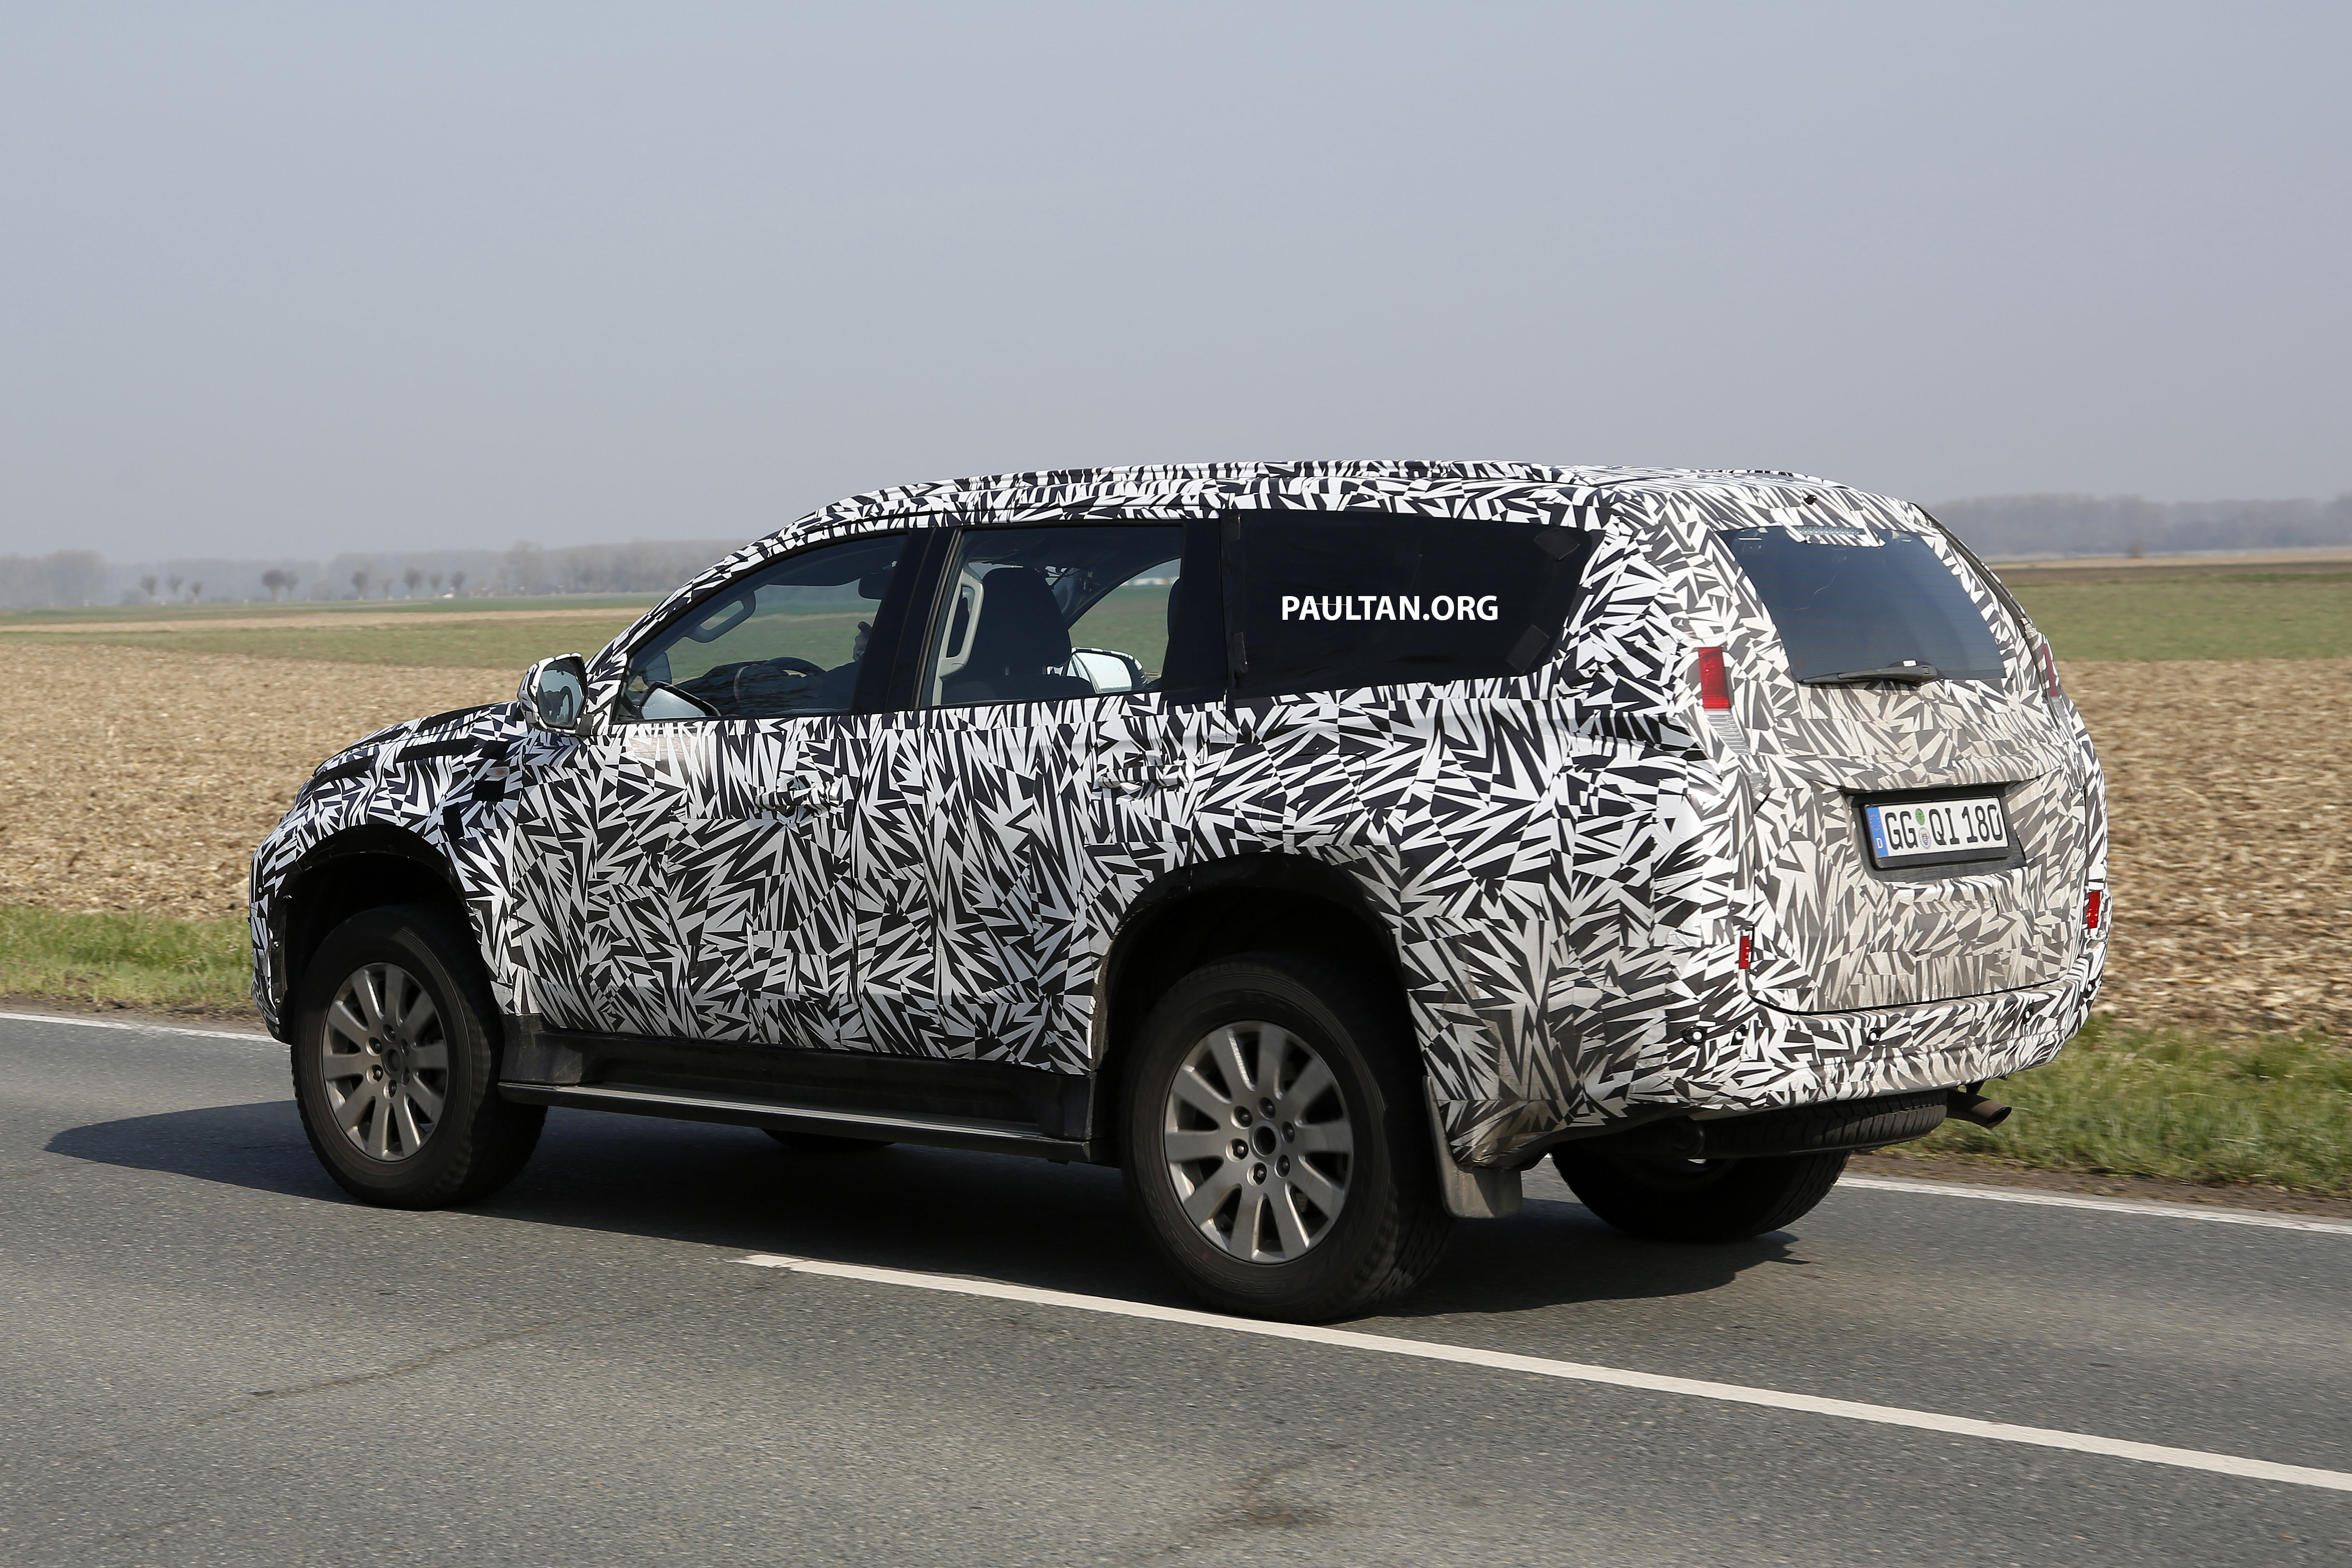 Back to Story: SPIED: 2016 Mitsubishi Pajero Sport first sightings